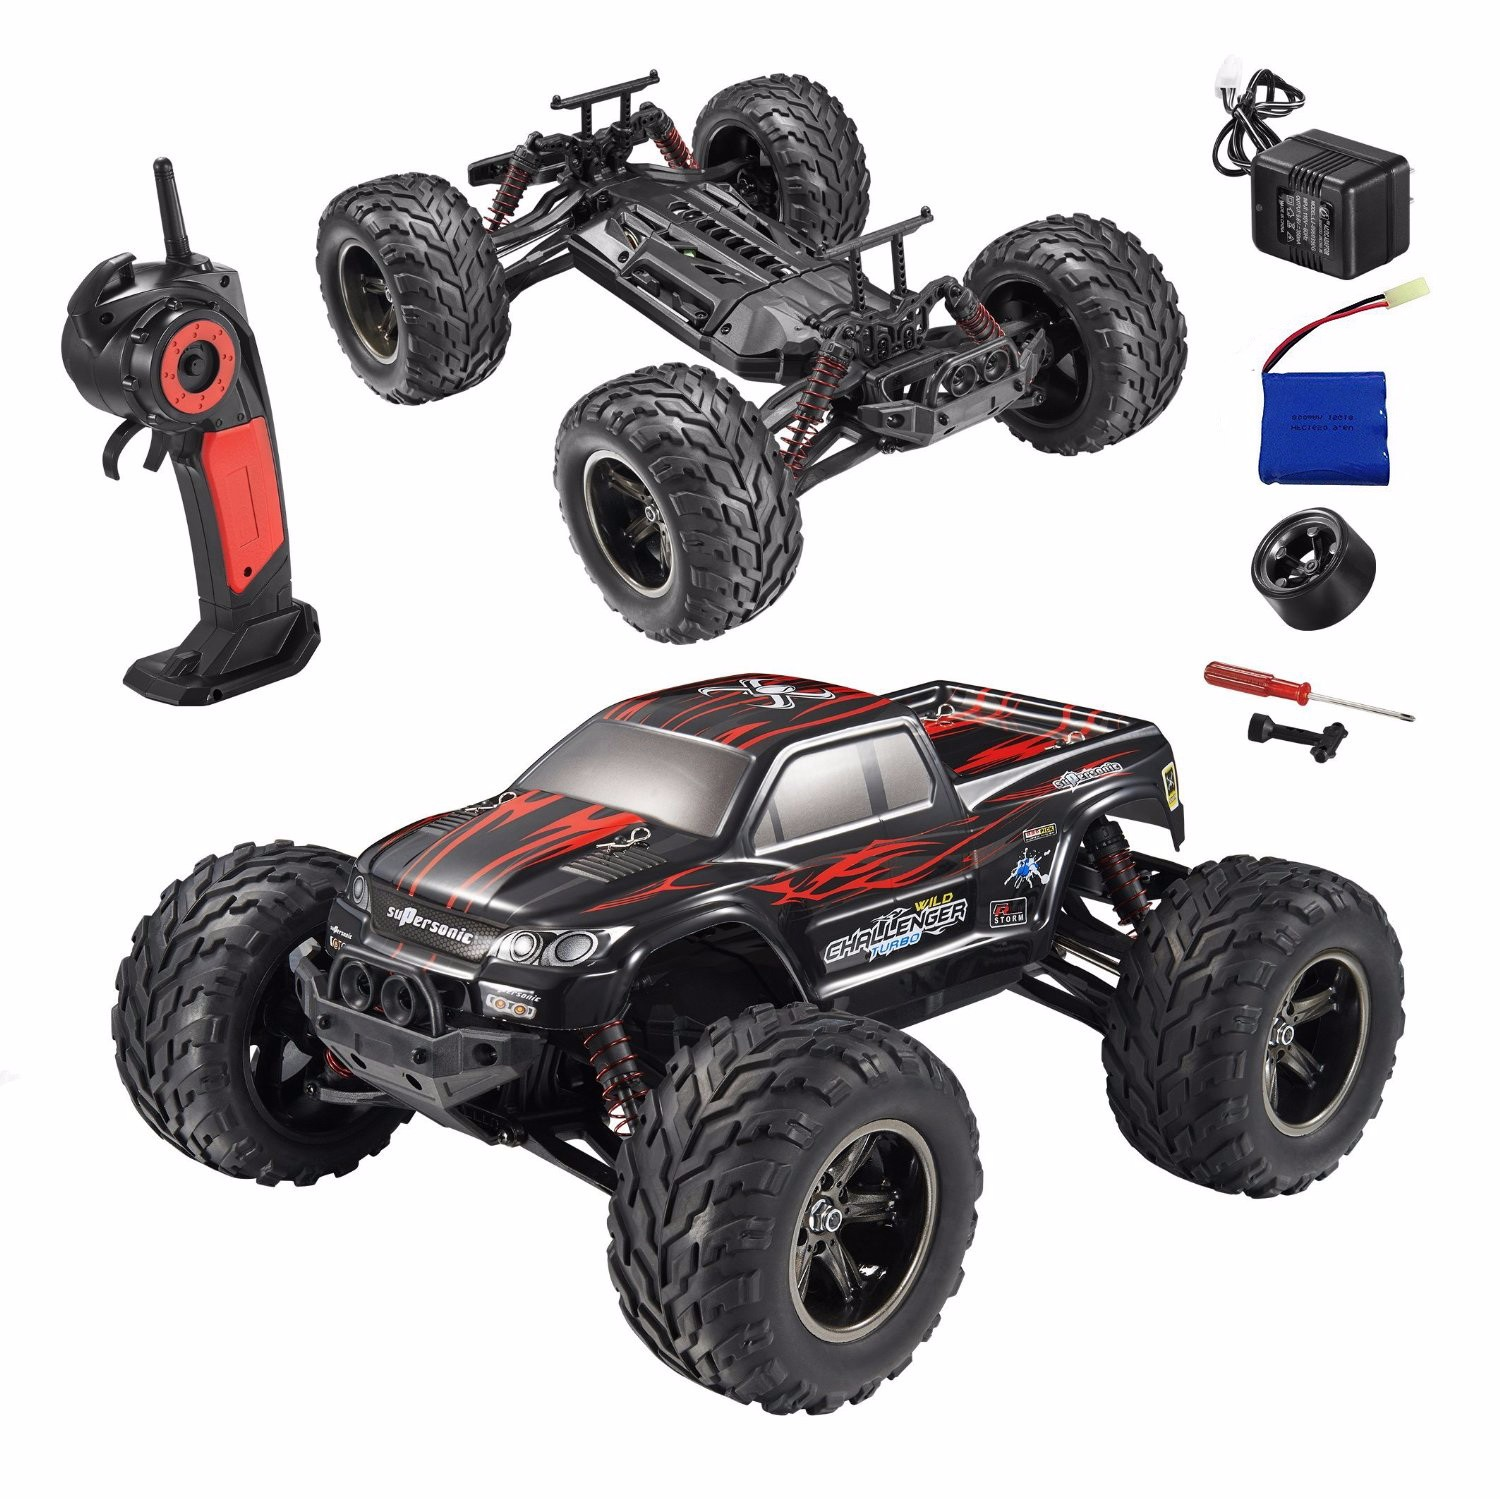 1/12 Scale 2.4Ghz Radio Remote Control 2WD Off Road Monst...